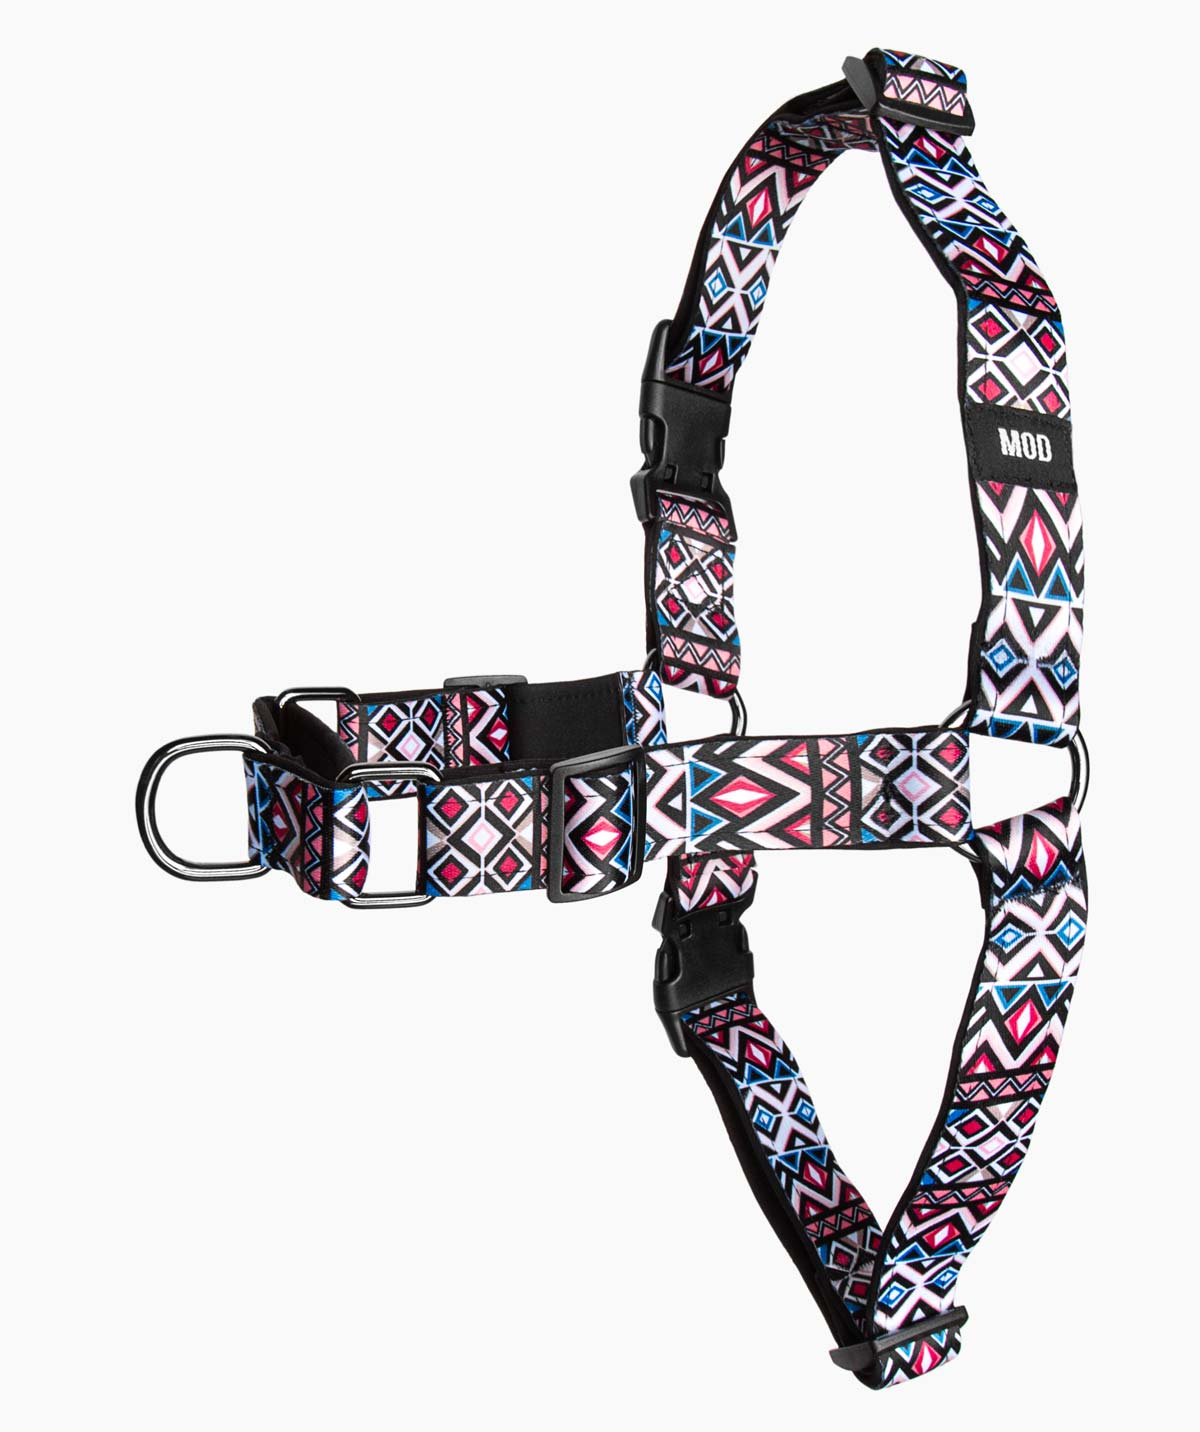 Tribal Bible No-Pull Harness - MODLEASH